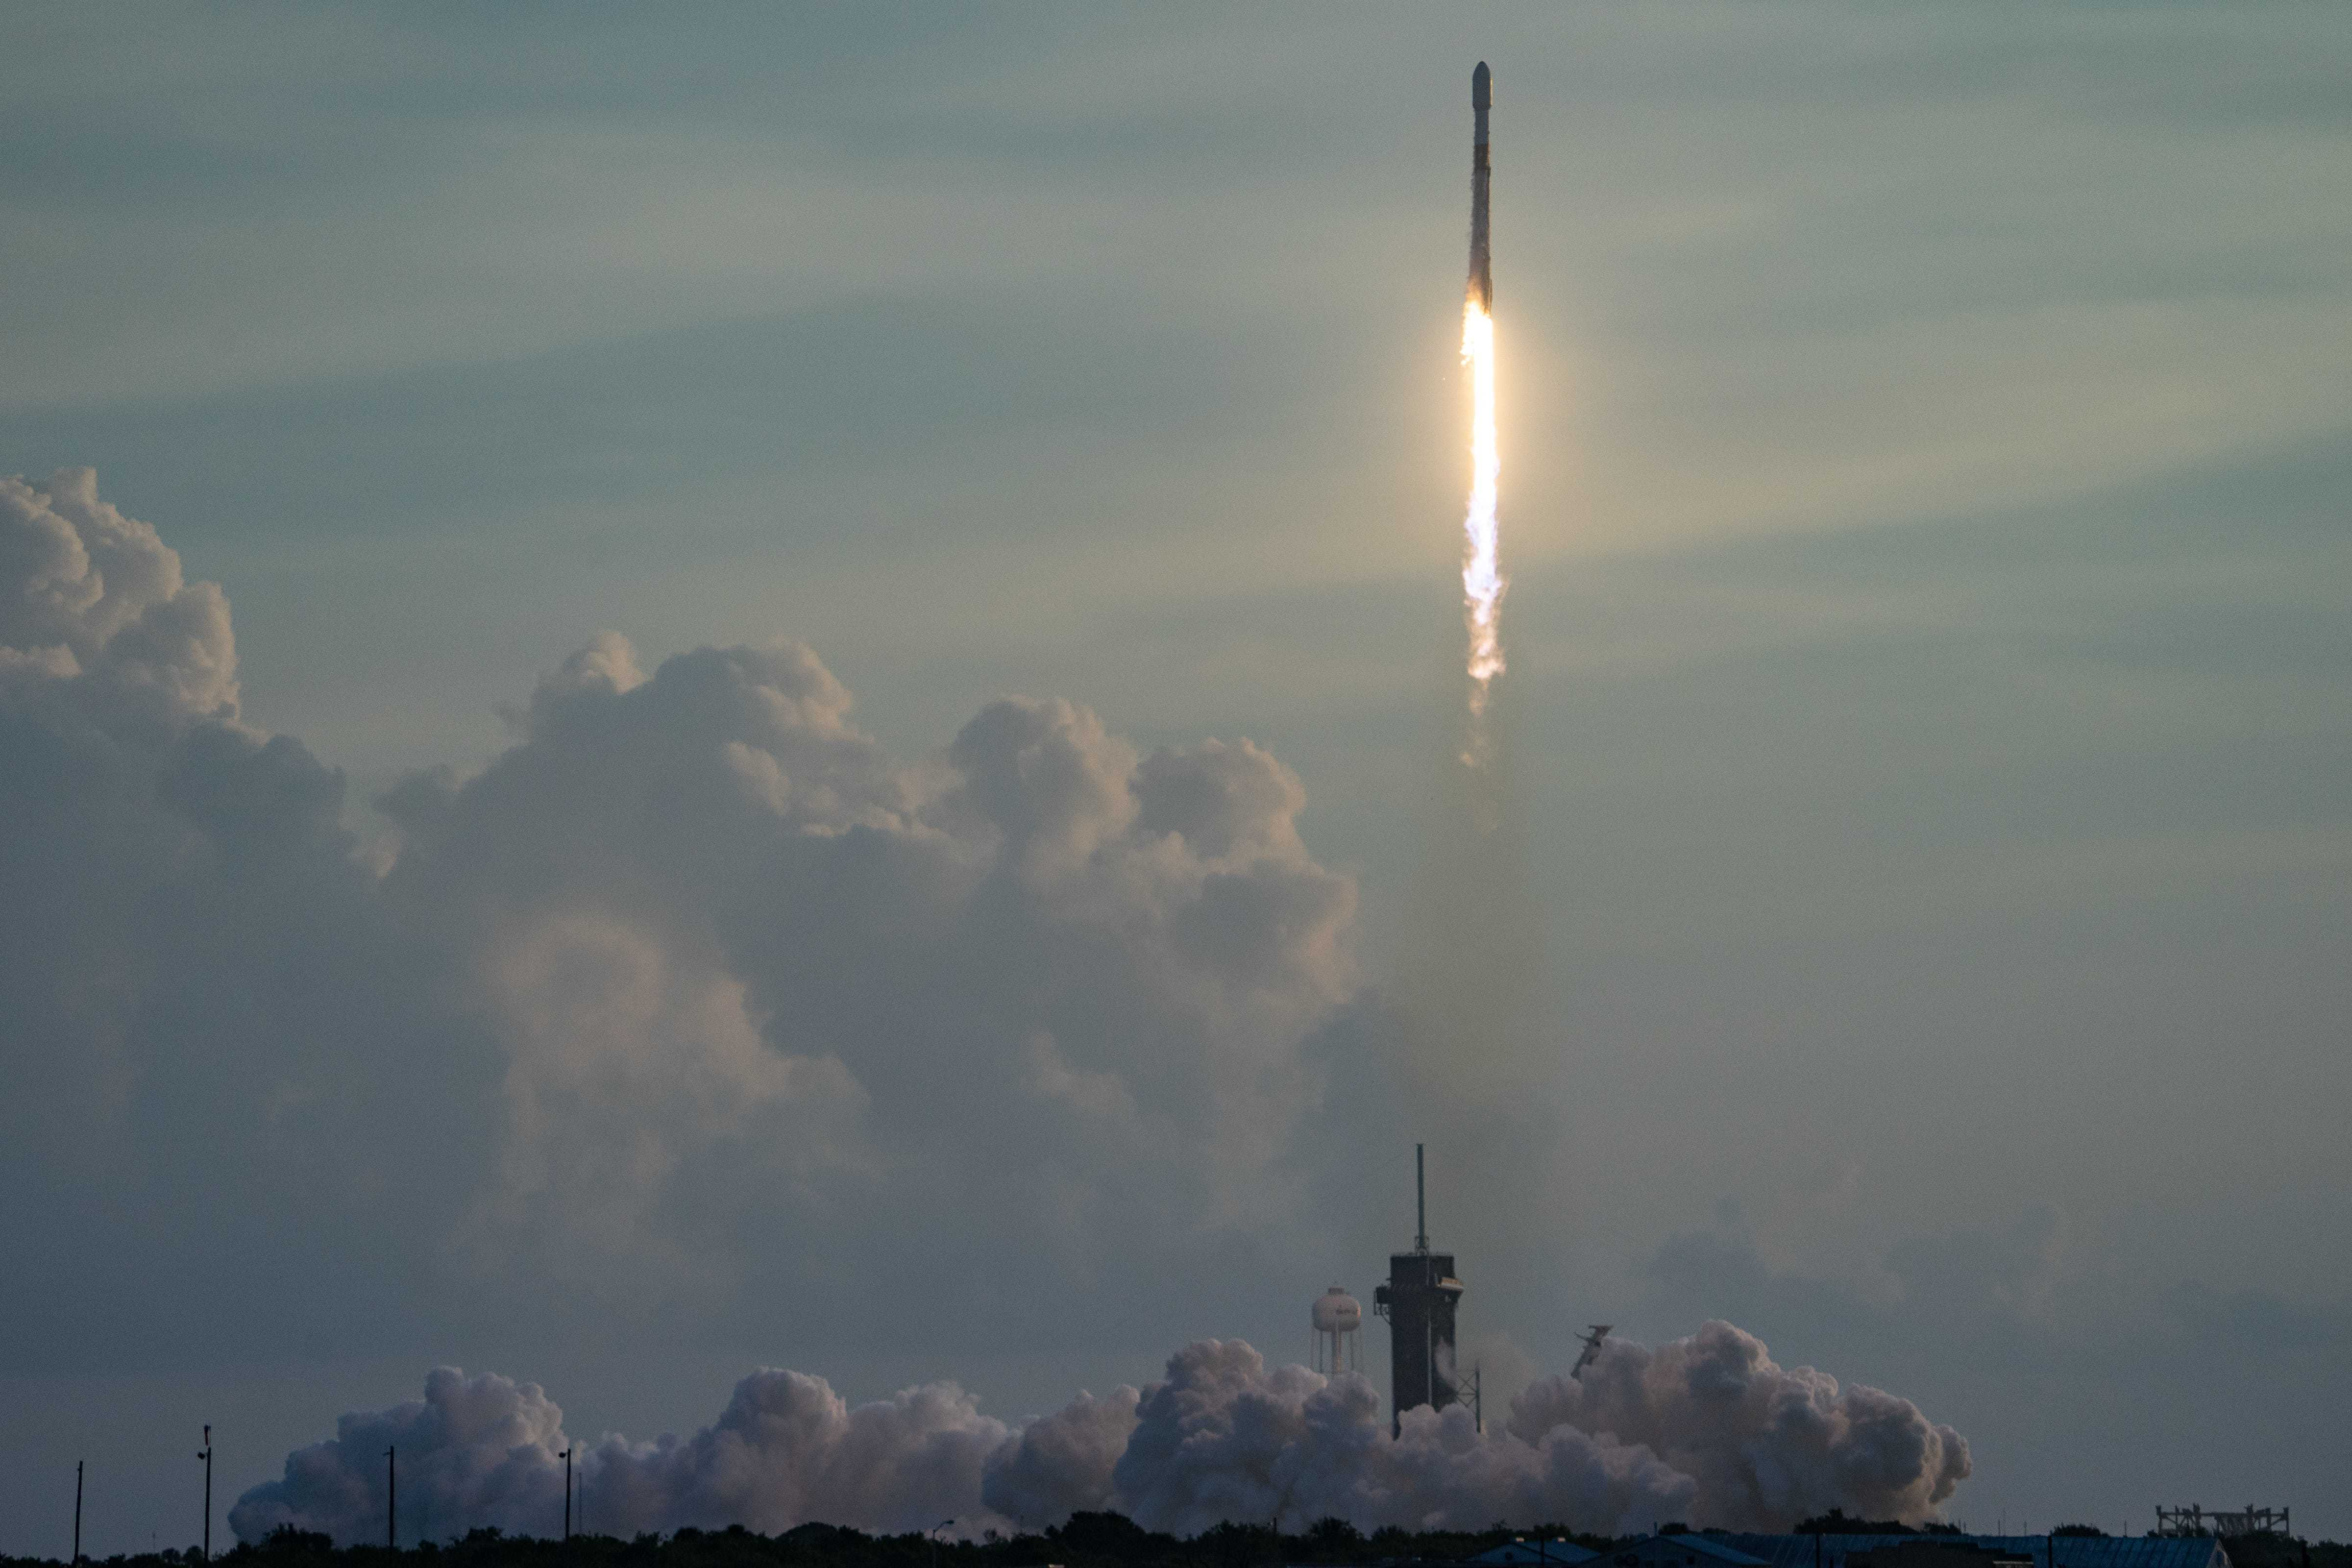 FL: SpaceX Falcon 9 rocket launch at Kennedy Space Center